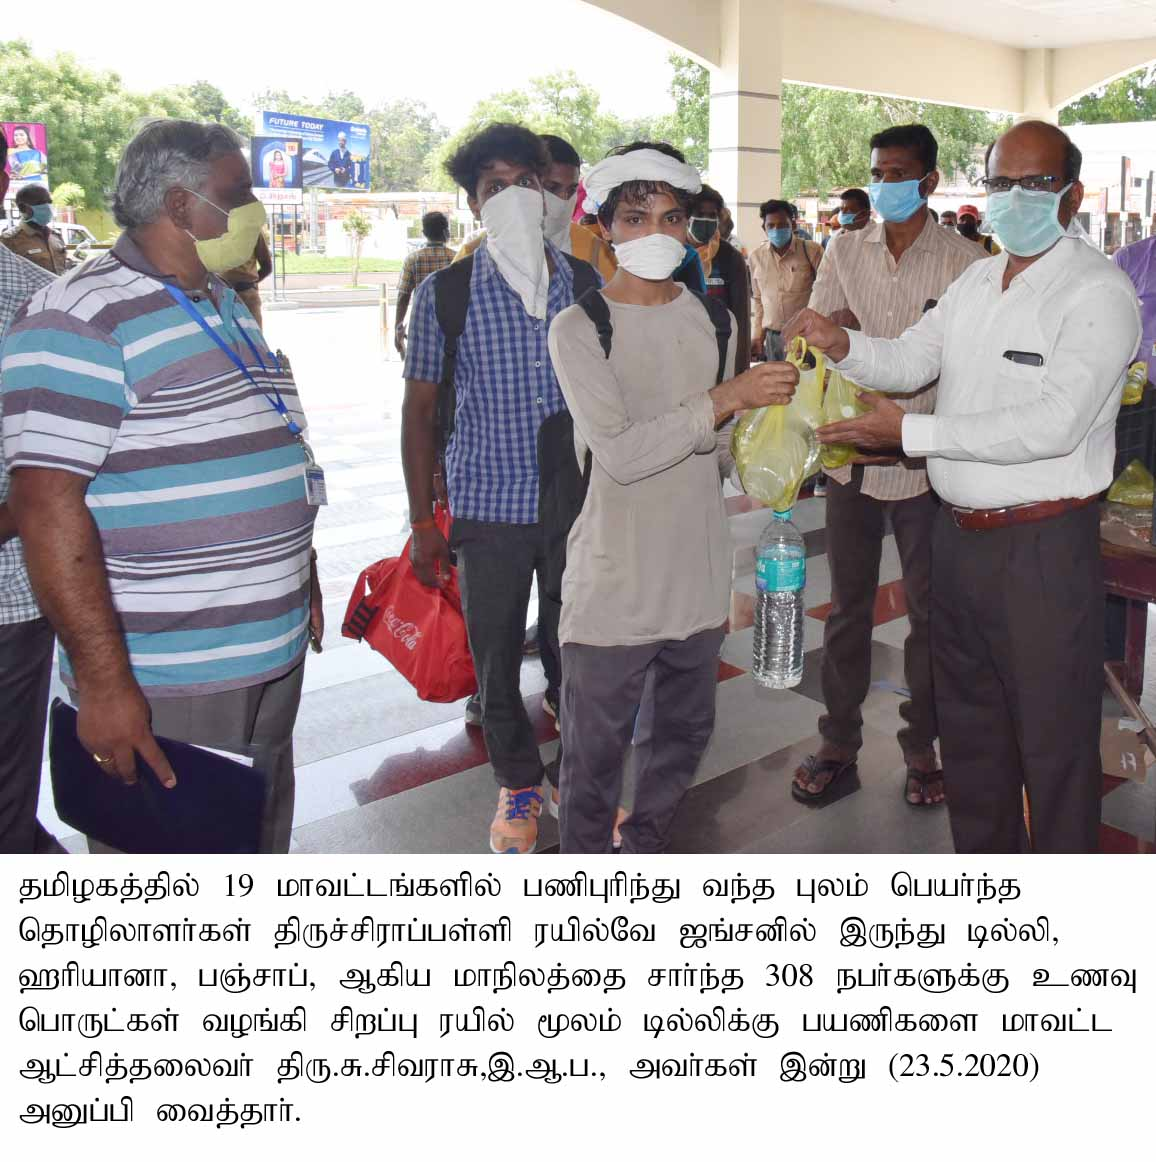 District Collector inspected transporting of Migrant Workers to Delhi through Special Train on 23-05-2020